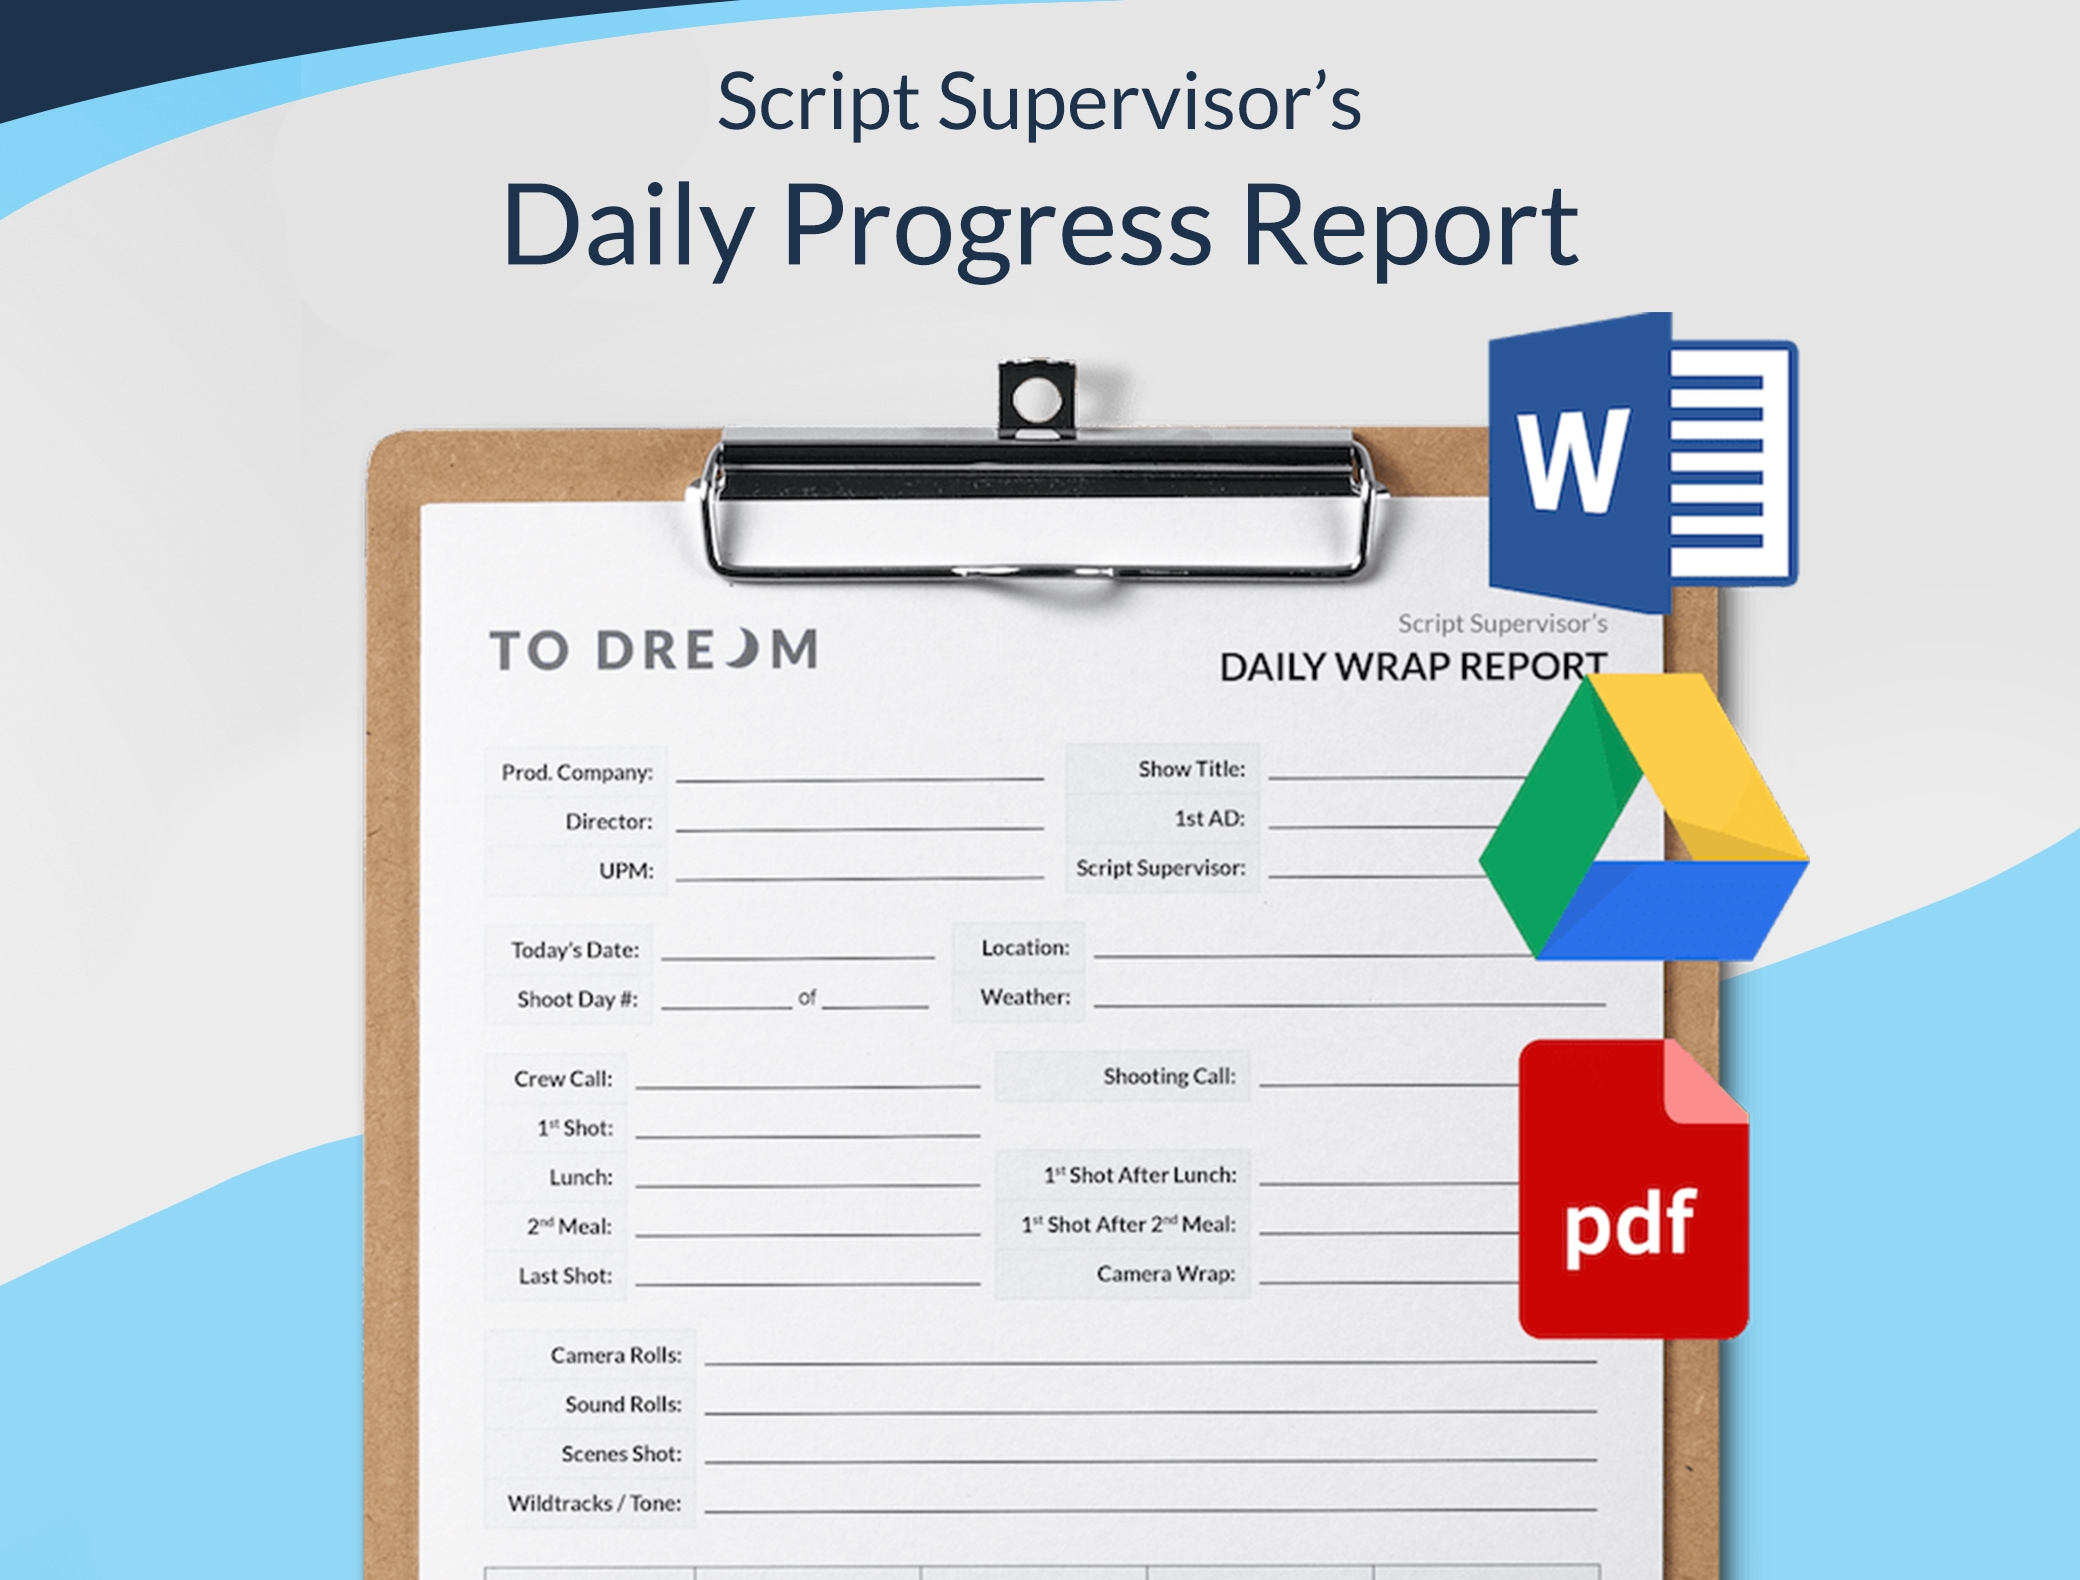 Script Supervisor Daily Progress Report - Free Template Download